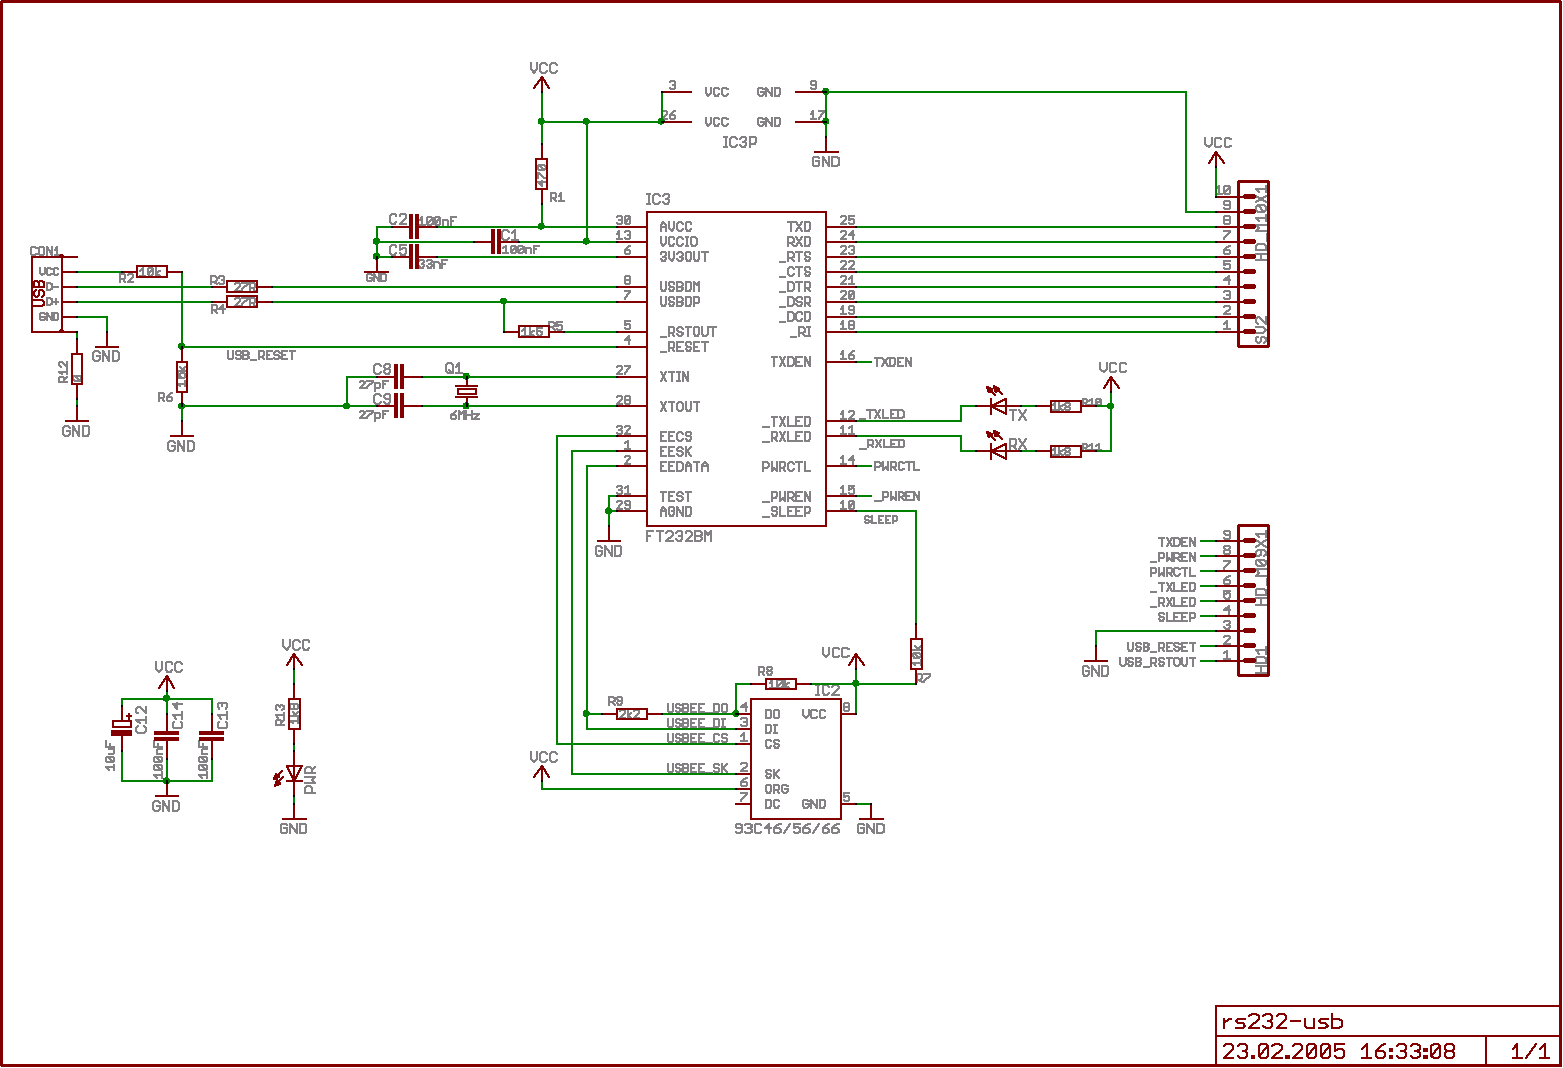 Usb To Rs485 Converter Wiring Diagram - New Era Of Wiring Diagram • - Usb To Rs485 Wiring Diagram